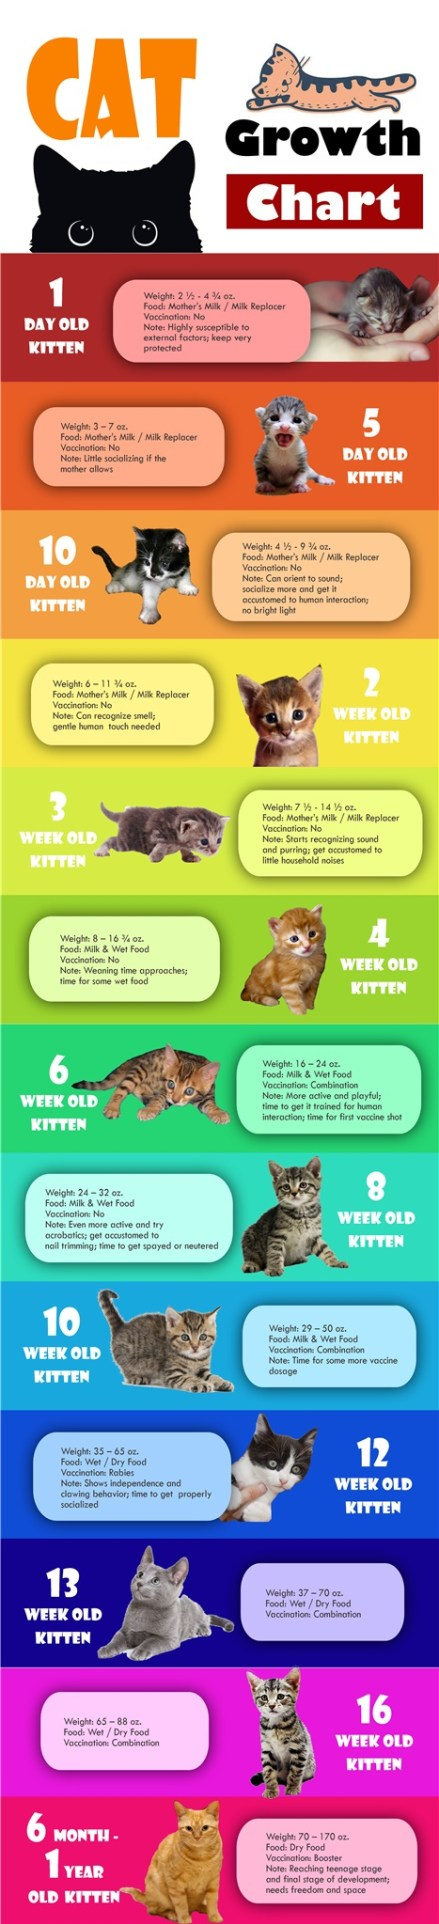 Infographic Kitten Cat Growth Chart By Age Weight And Food Cat Infographic Kitten Care Cats And Kittens